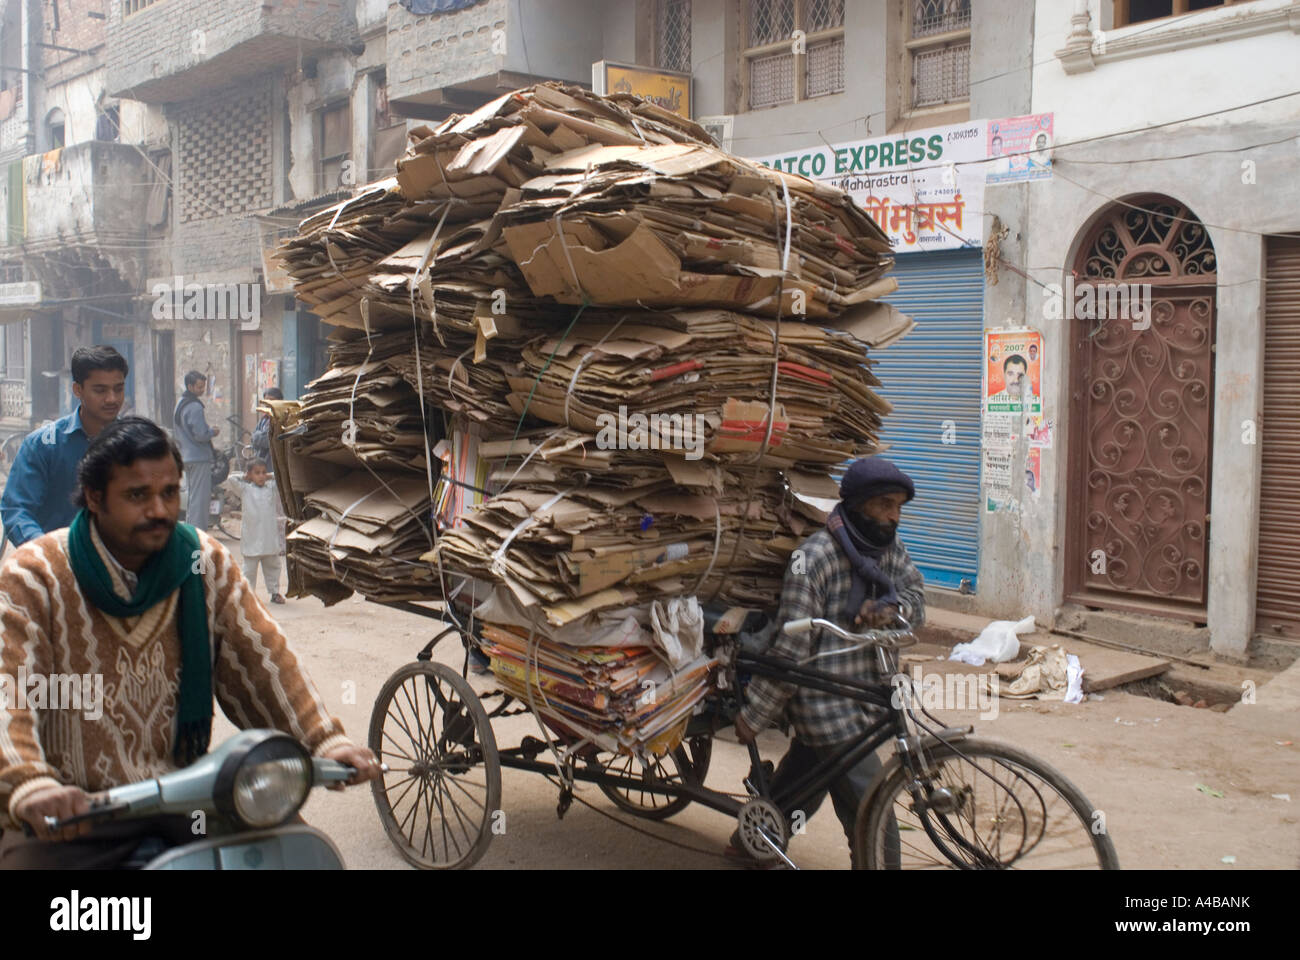 Stock image of crowded street with rickshaw carrying a ton of carton to recycle in Varanasi India - Stock Image